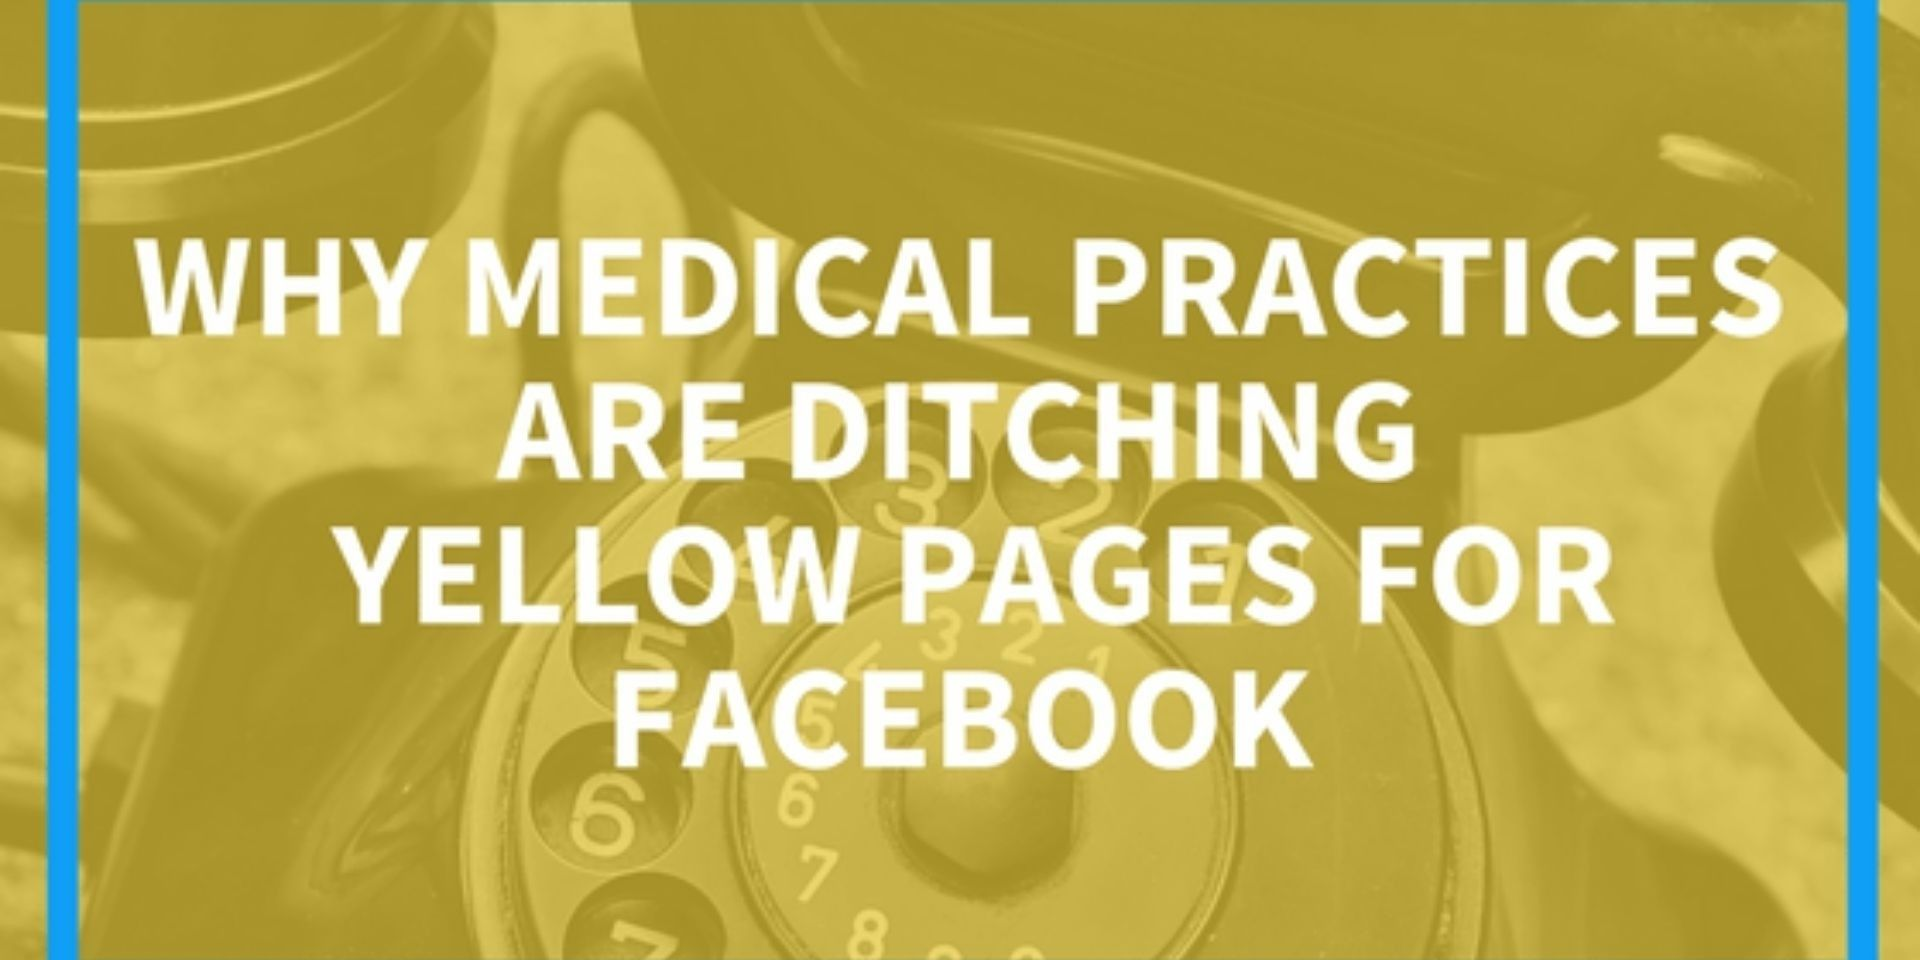 why choose facebook over the yellow pages